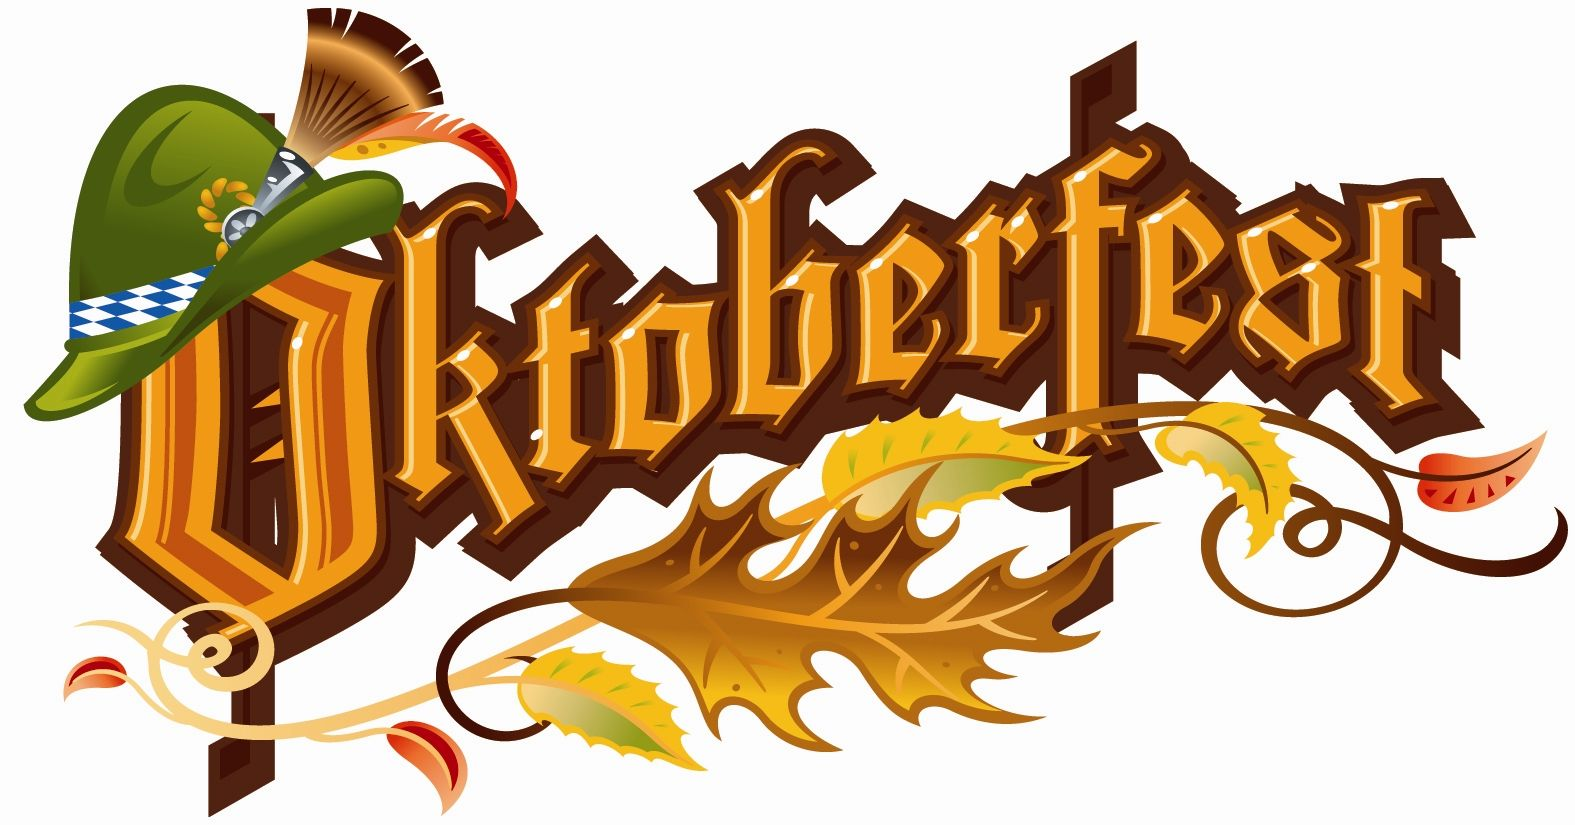 Clip Art Oktoberfest Clipart 1000 images about octoberfest on pinterest design royalty free stock photos and beer mugs